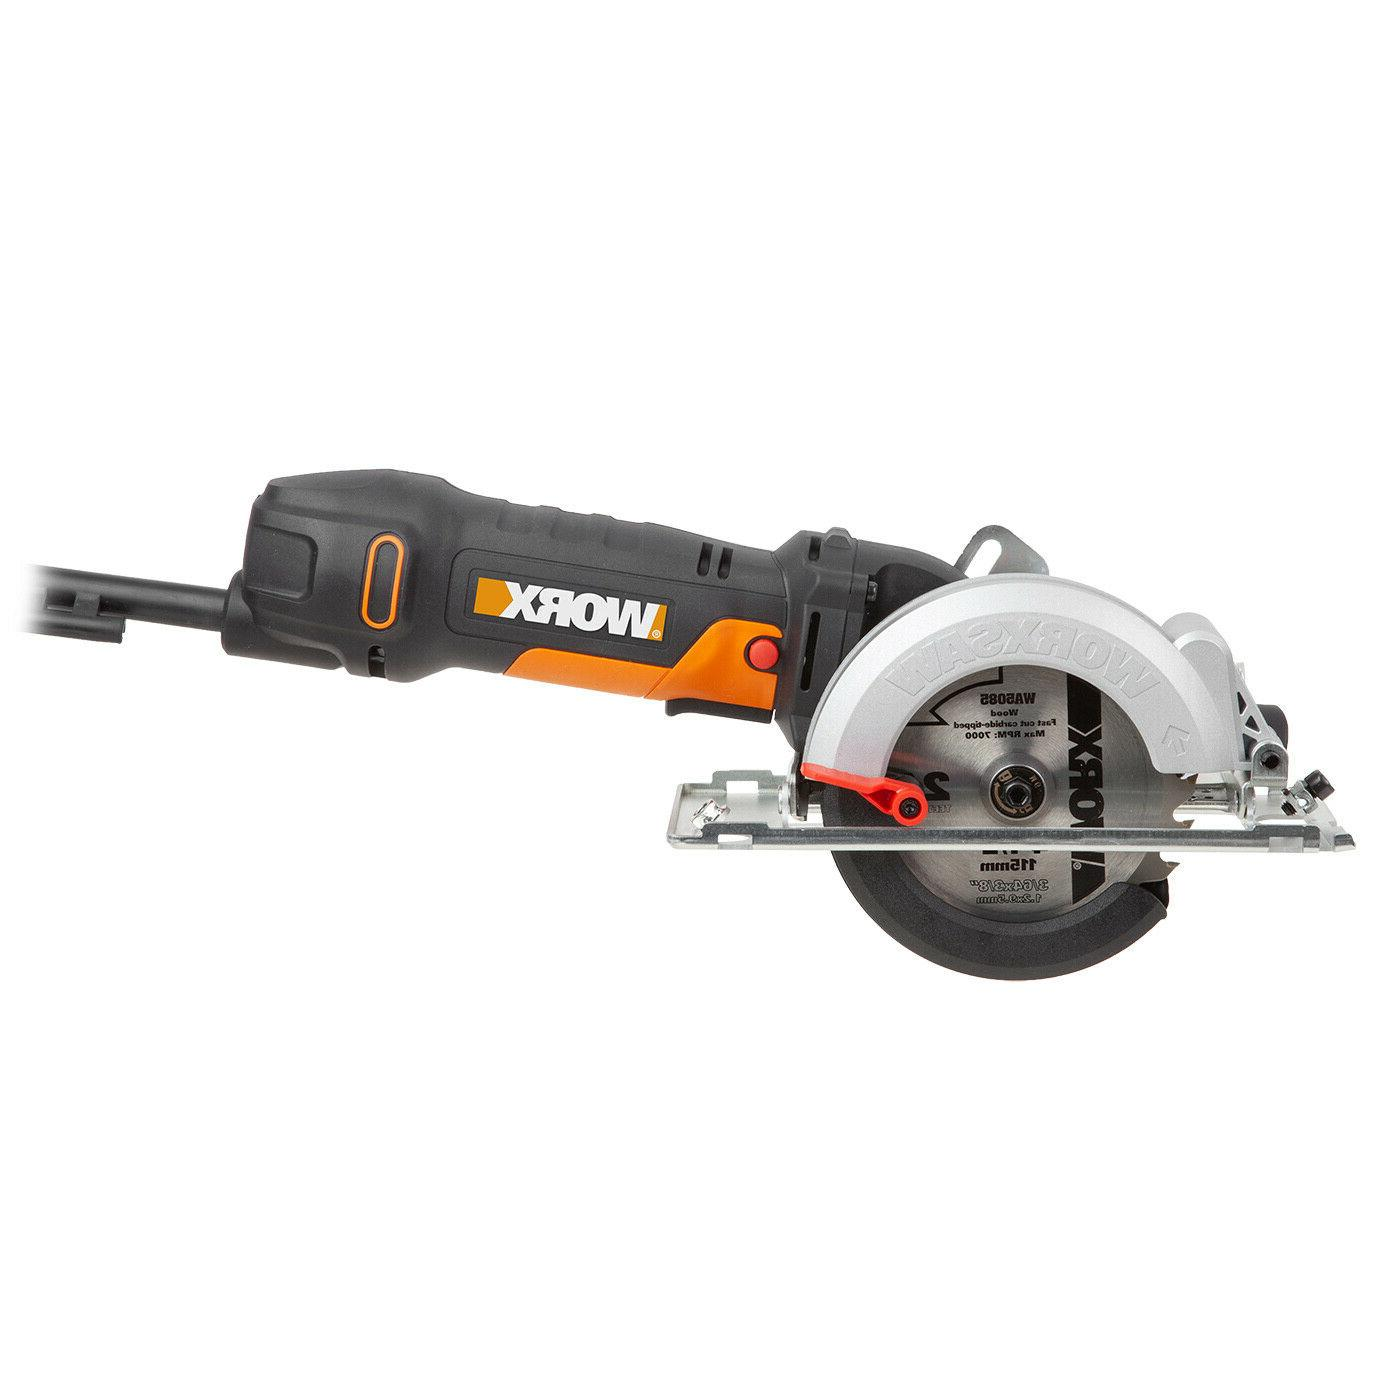 "WORX WX439L WORXSAW 4-1/2"" 4.5 AMP Corded Compact Circular S"